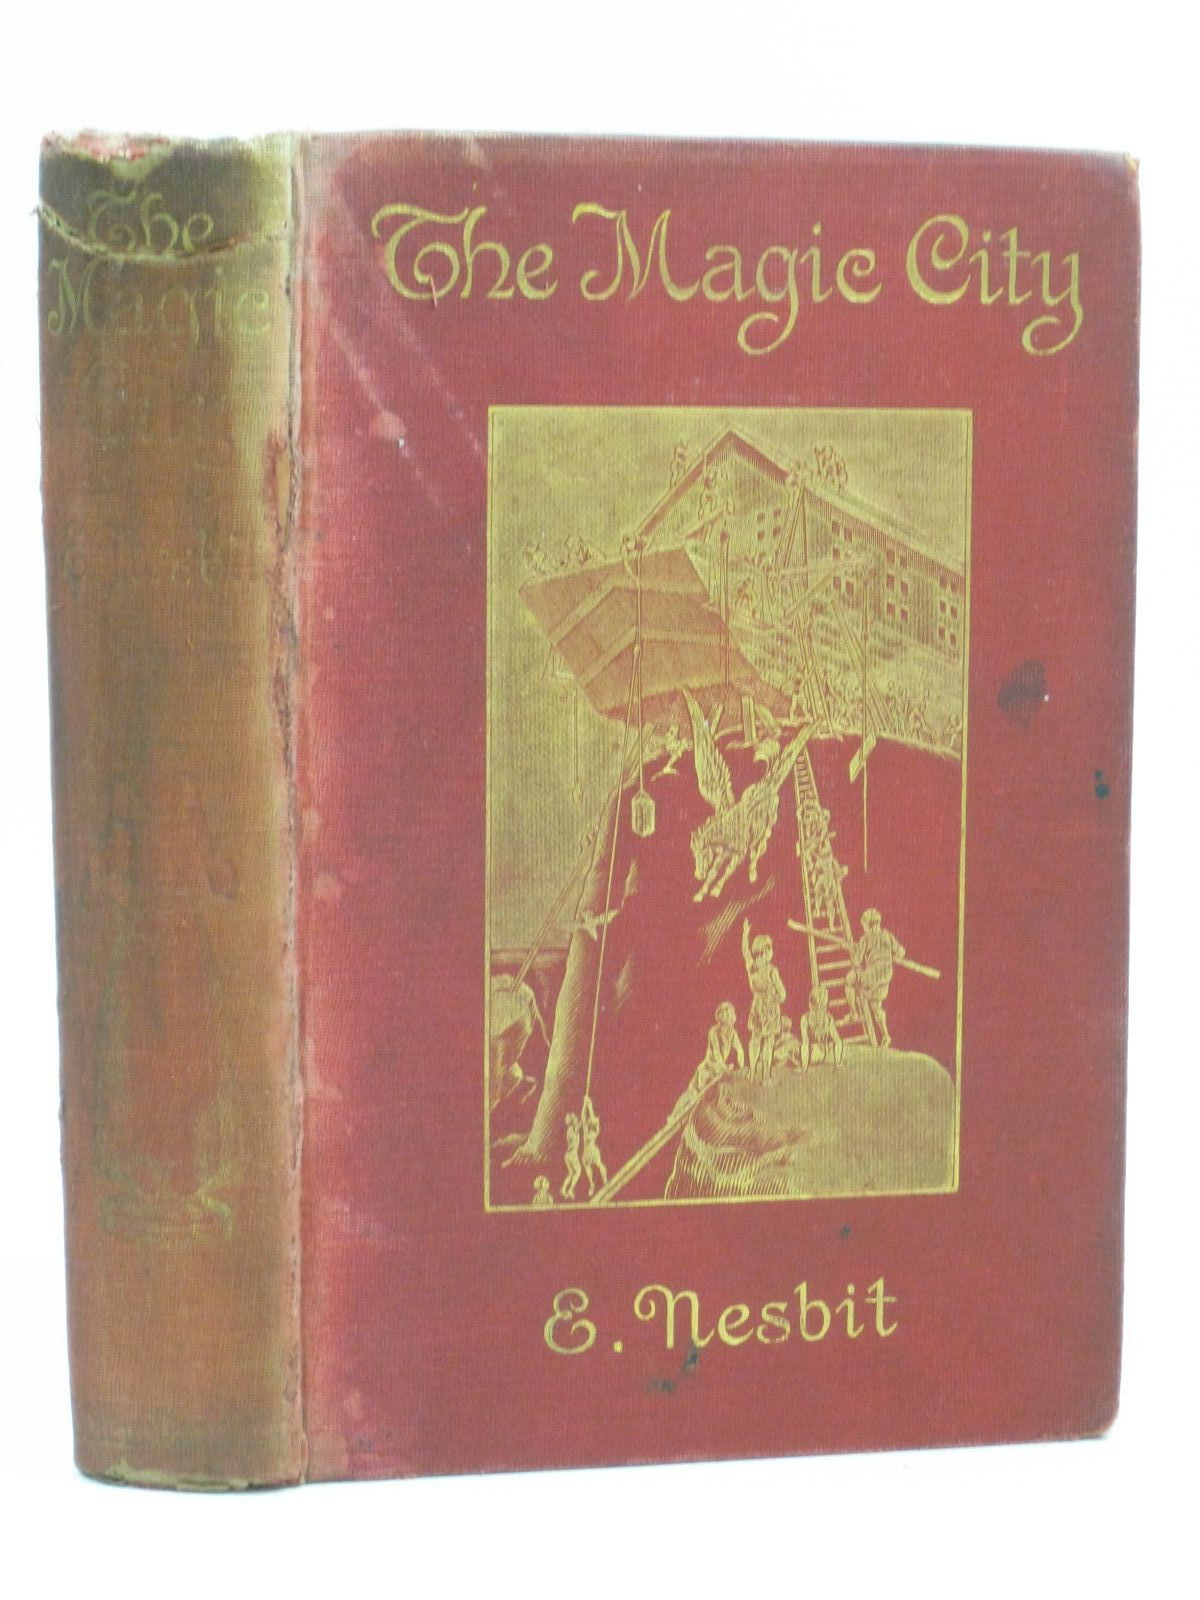 Photo of THE MAGIC CITY written by Nesbit, E. illustrated by Millar, H.R. published by Macmillan & Co. Ltd. (STOCK CODE: 1314626)  for sale by Stella & Rose's Books